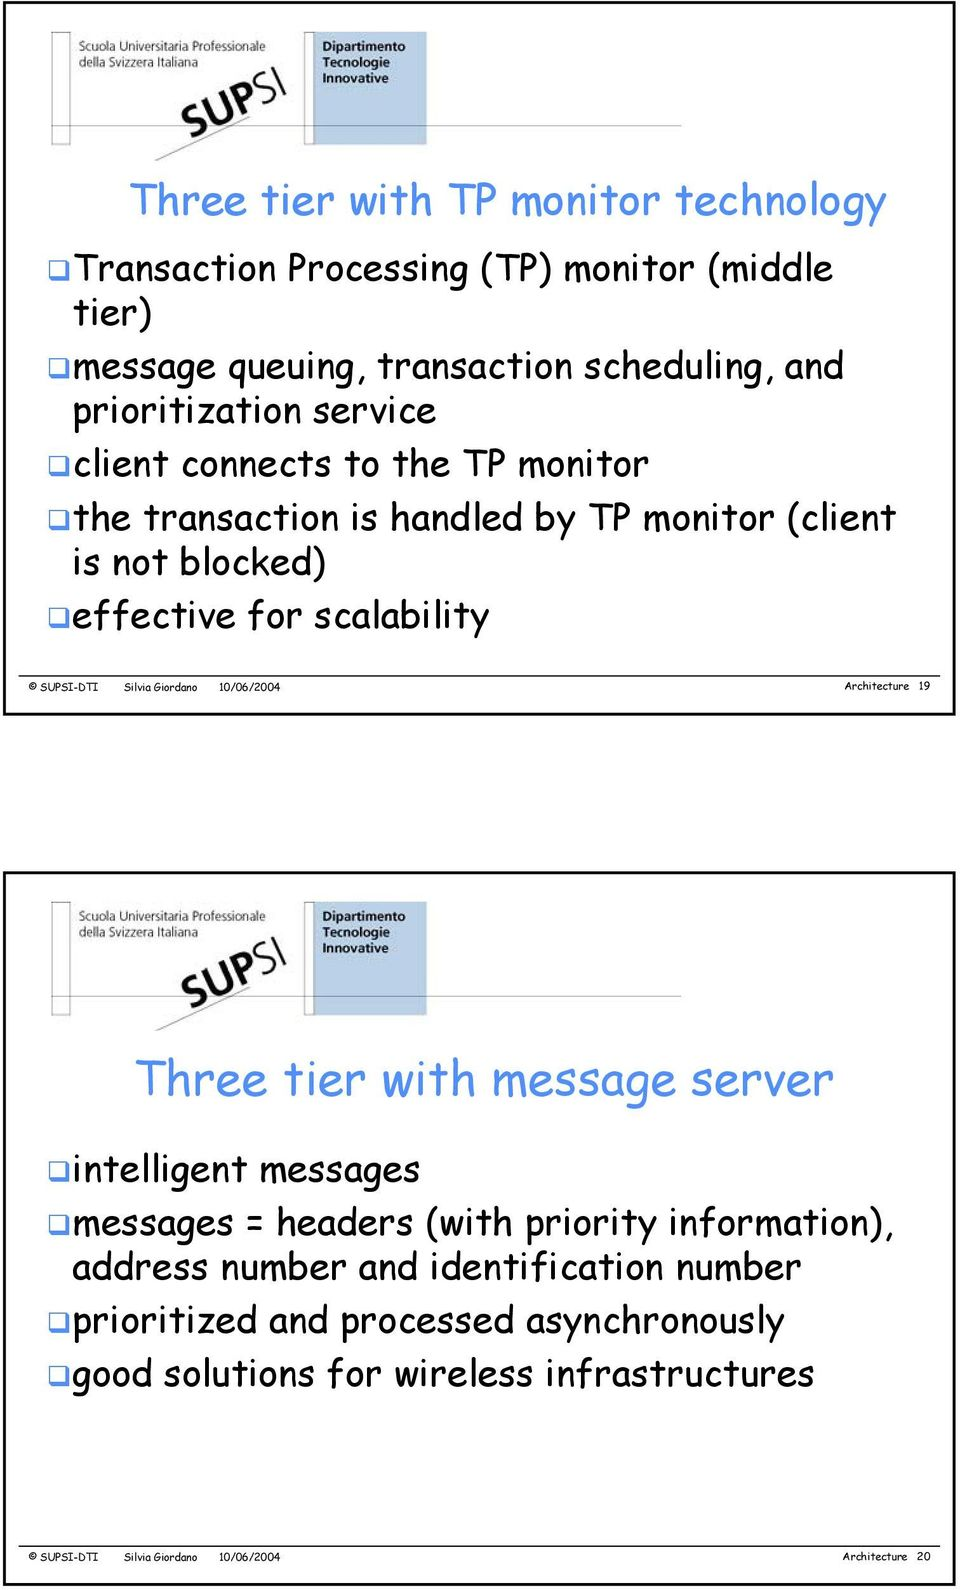 Giordano 10/06/2004 Architecture 19 Three tier with message server intelligent messages messages = headers (with priority information), address number